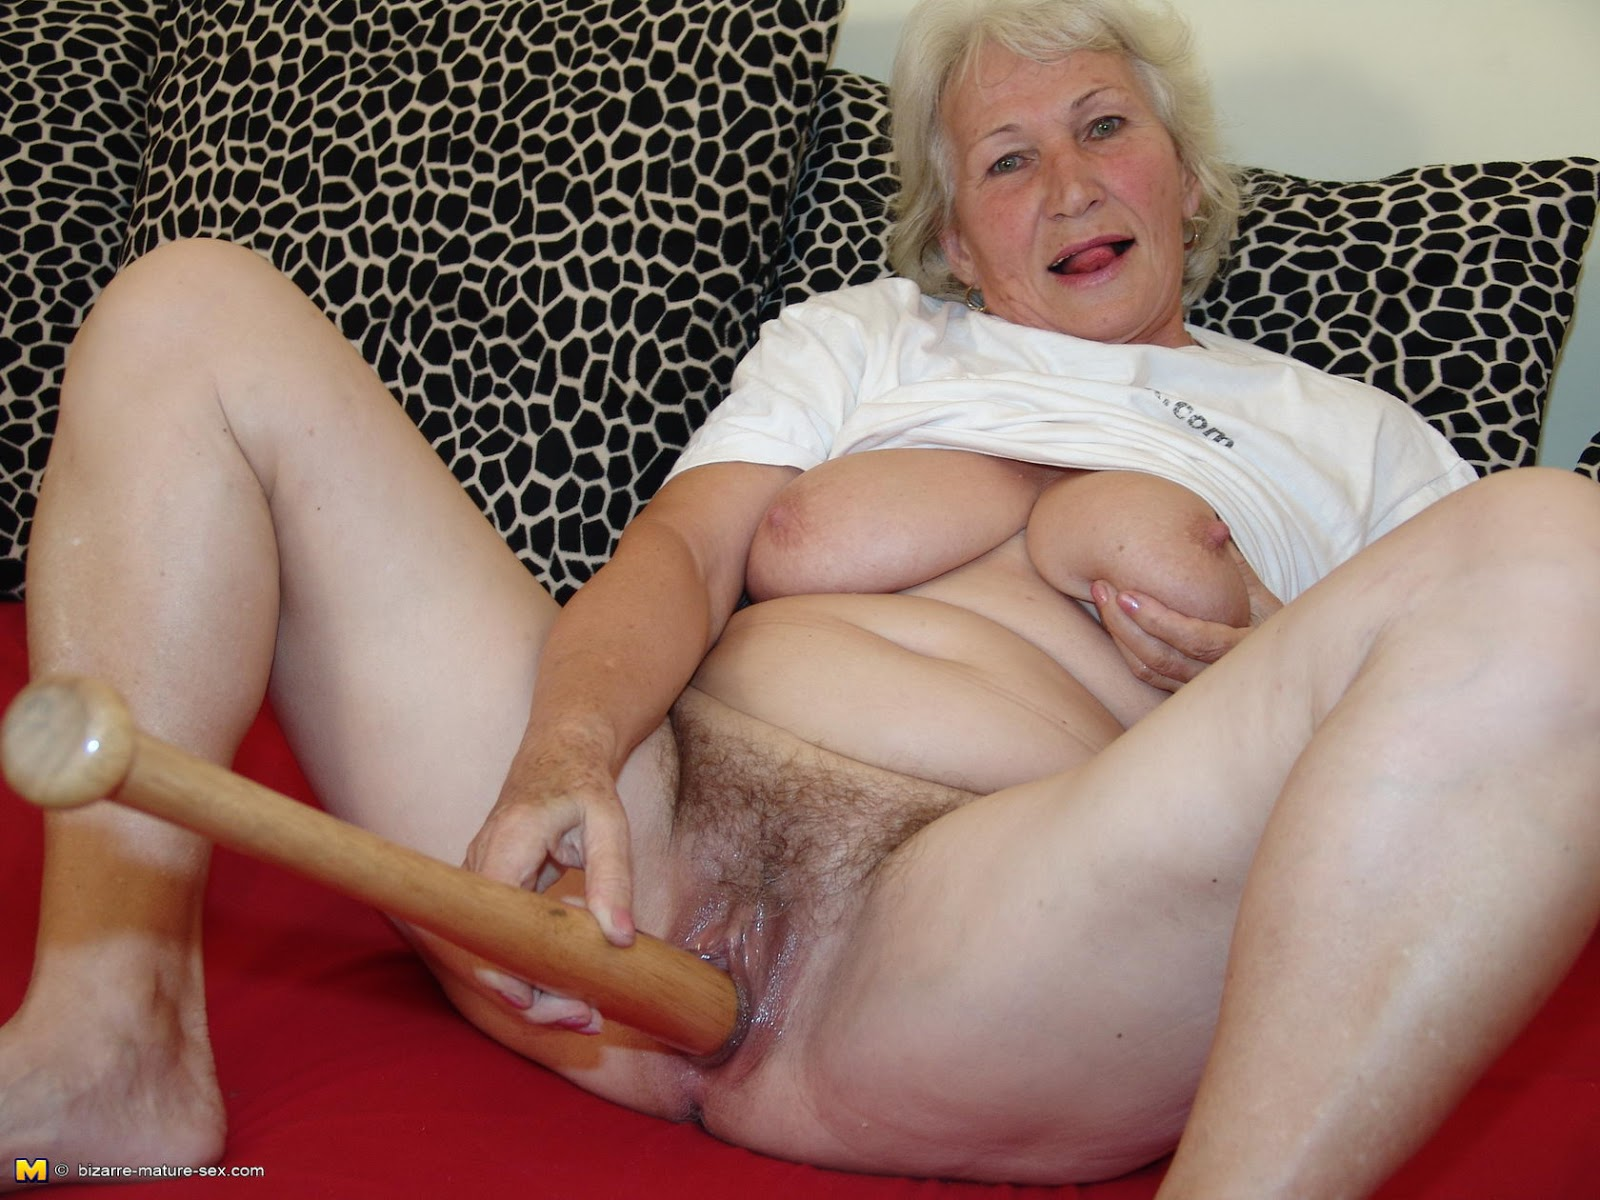 Share granny solo porn recommend you